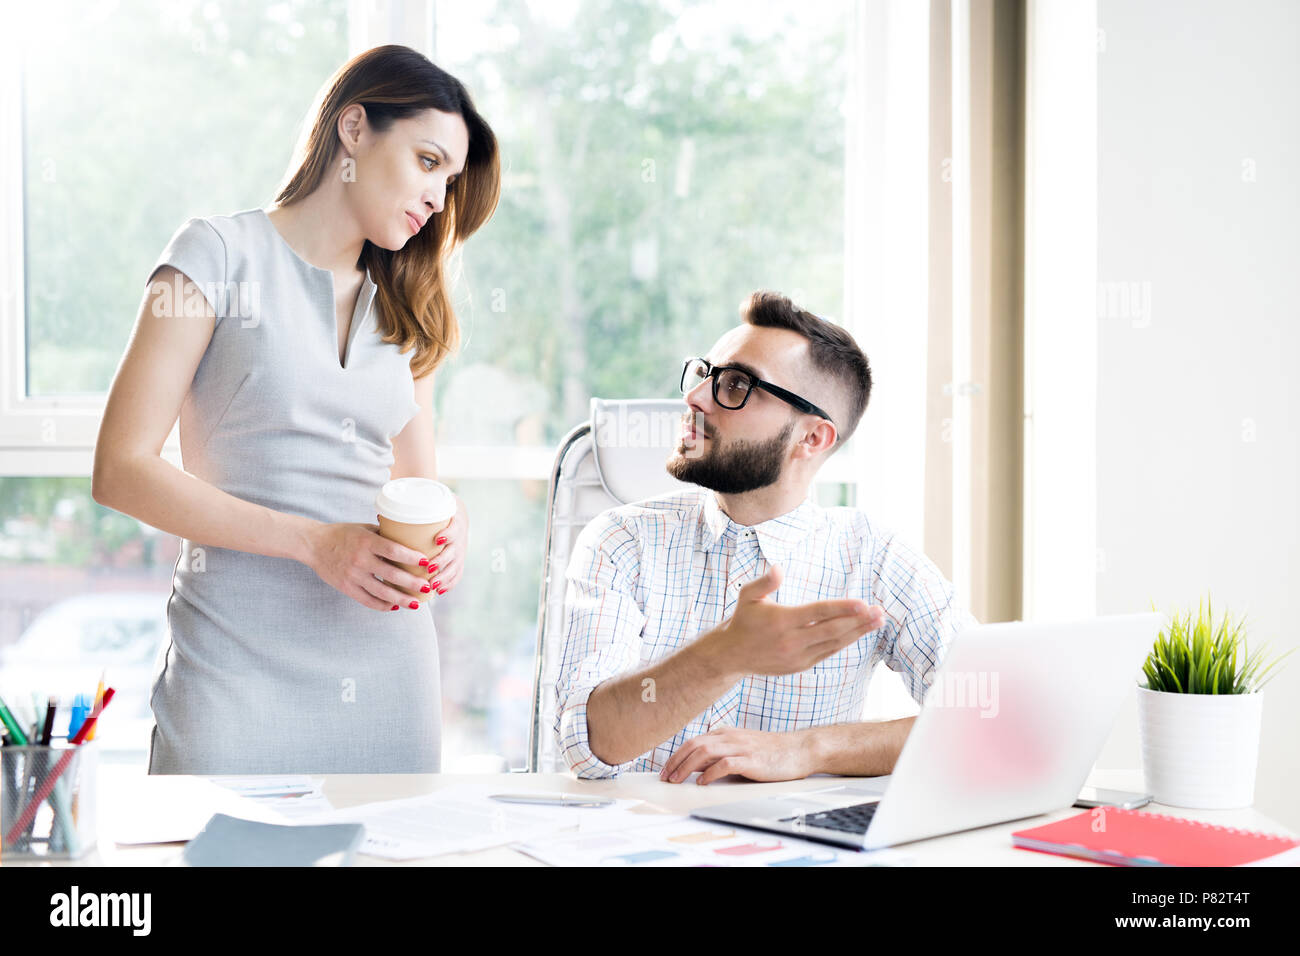 Two Business Managers Discussing Work - Stock Image